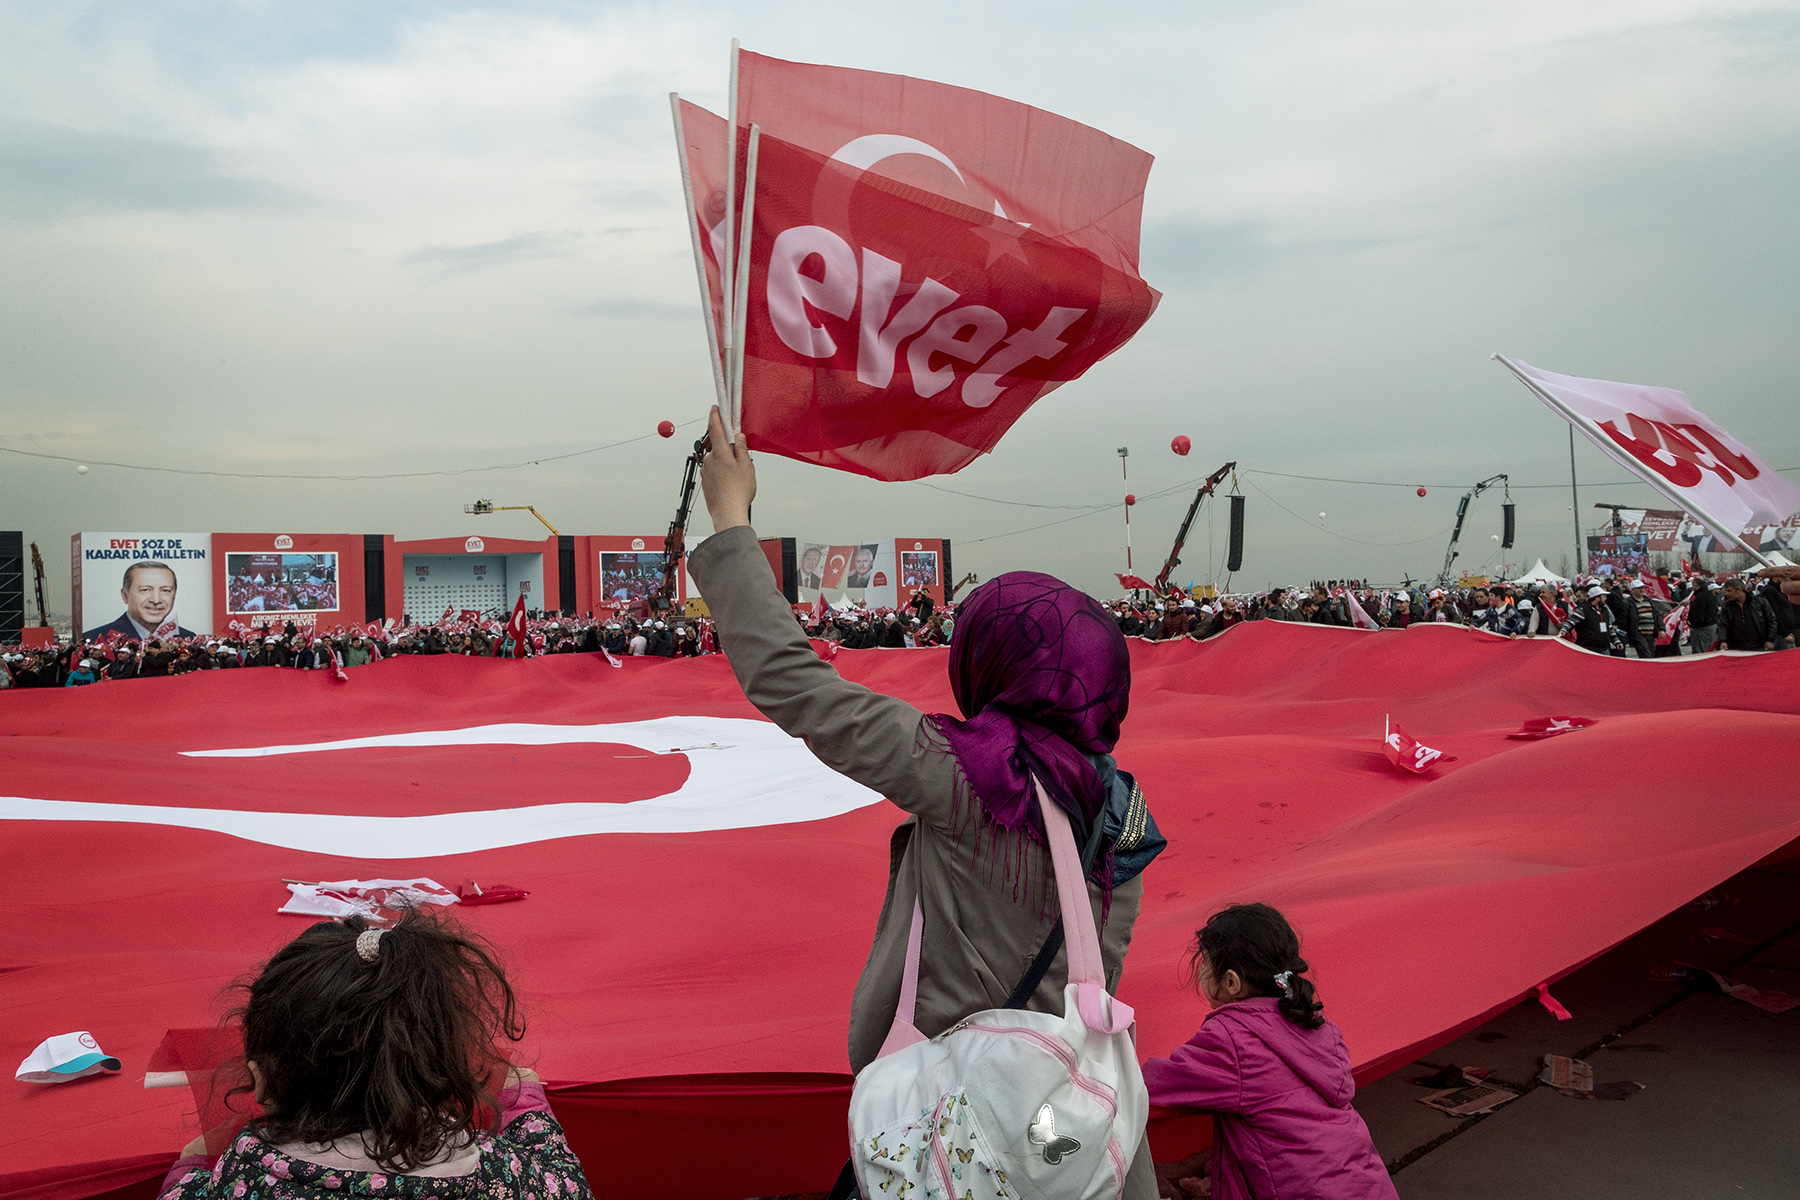 A woman waves a flag reading 'yes' (evet) during a campaign rally one week before the referendum vote at Yenikapi Square in Istanbul, Turkey on April 8, 2017.